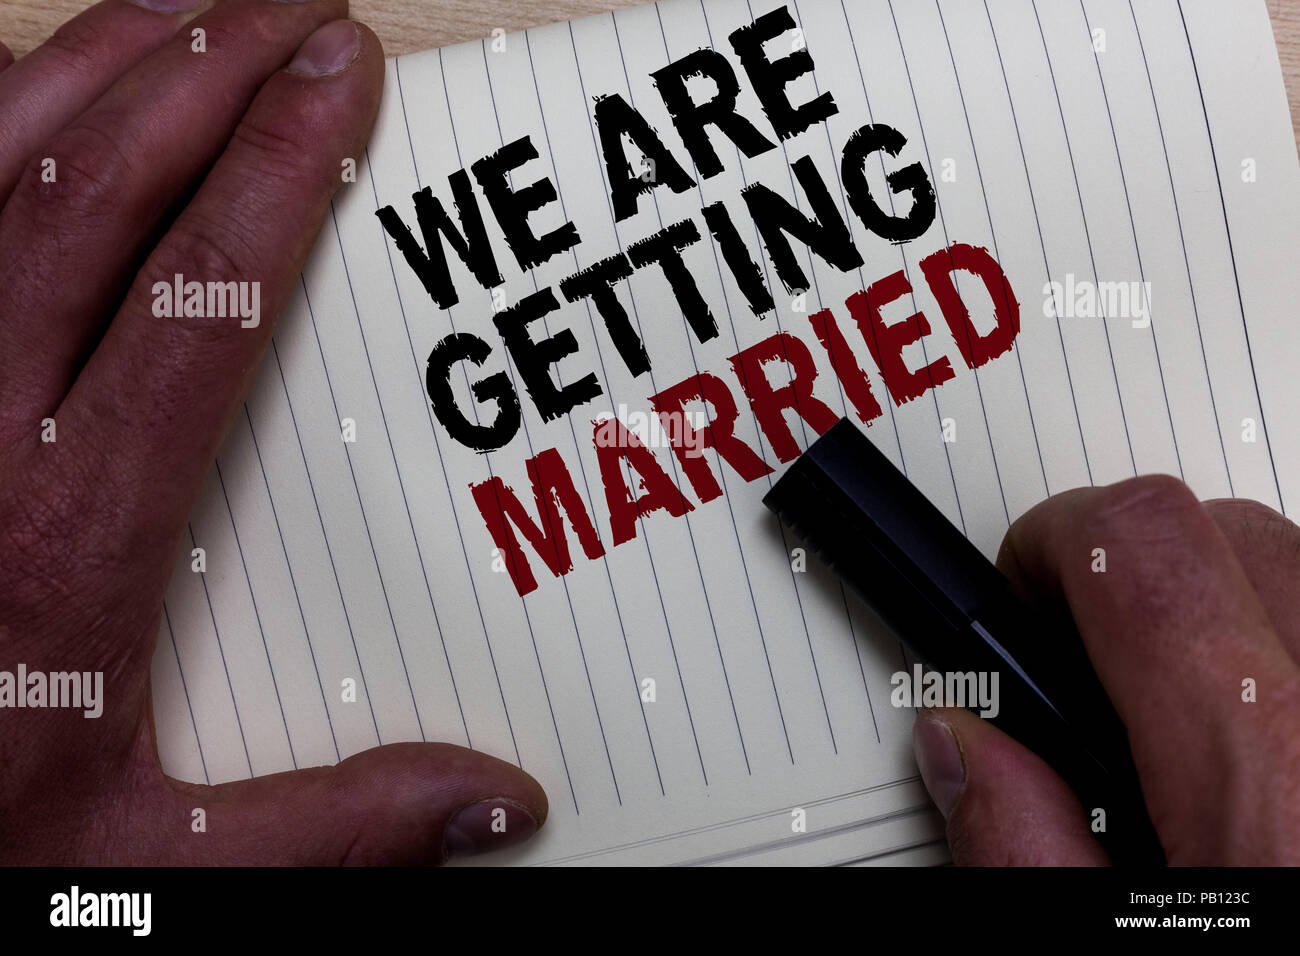 Word writing text We Are Getting Married. Business concept for Engagement Wedding preparation Loving couple Man's hand grasp black marker with some bl - Stock Image